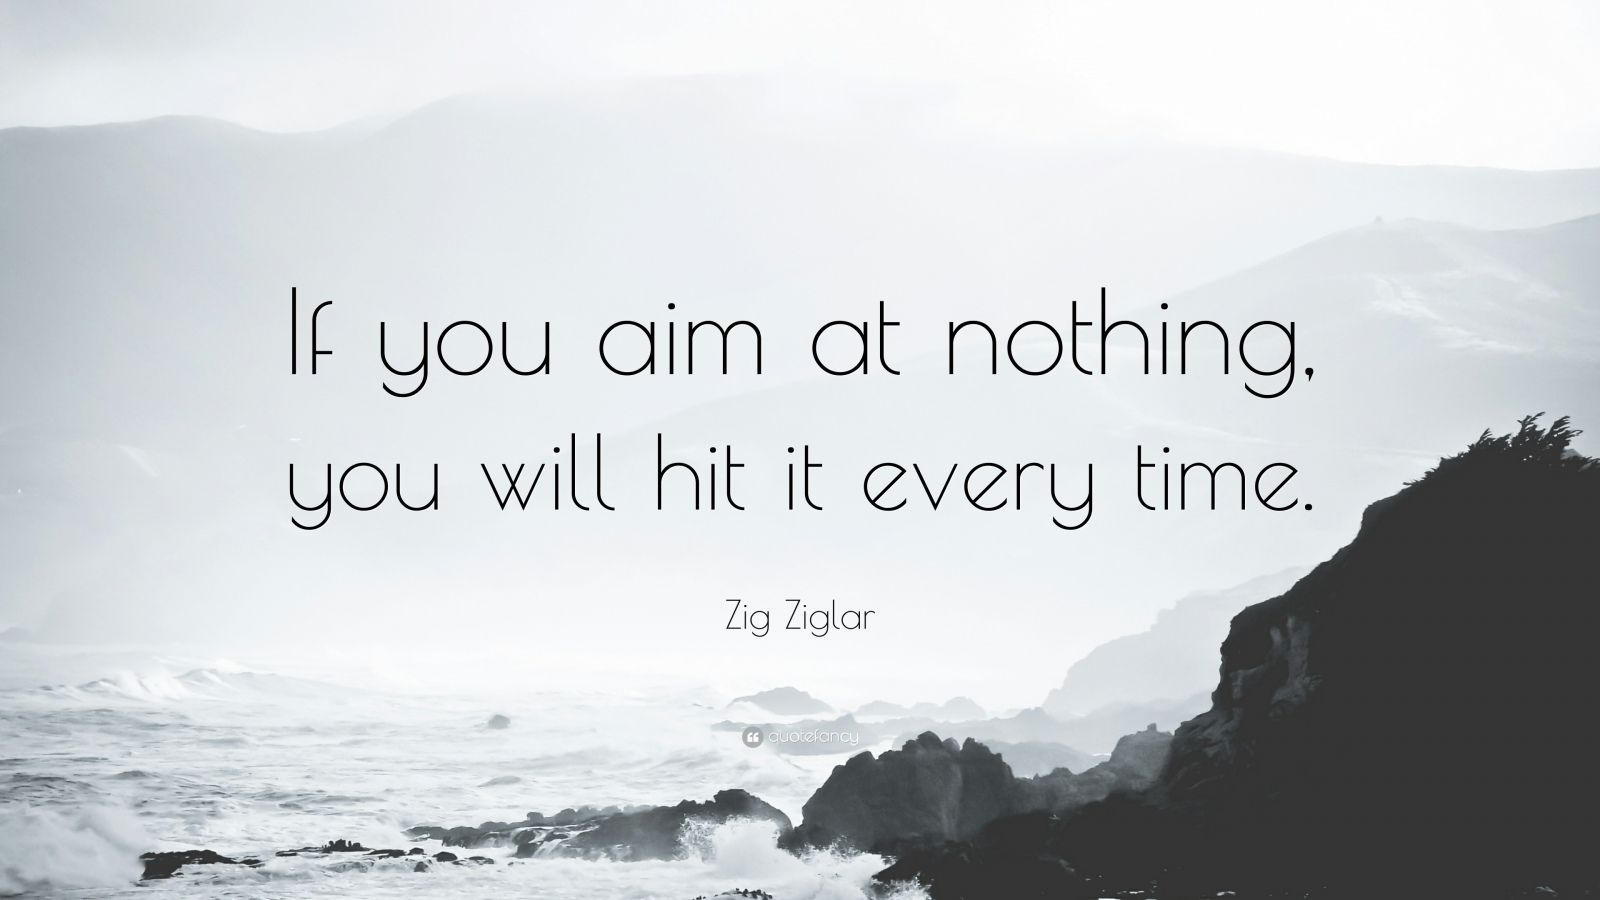 Quotes Zig Ziglar Adorable Zig Ziglar Quotes 100 Wallpapers  Quotefancy